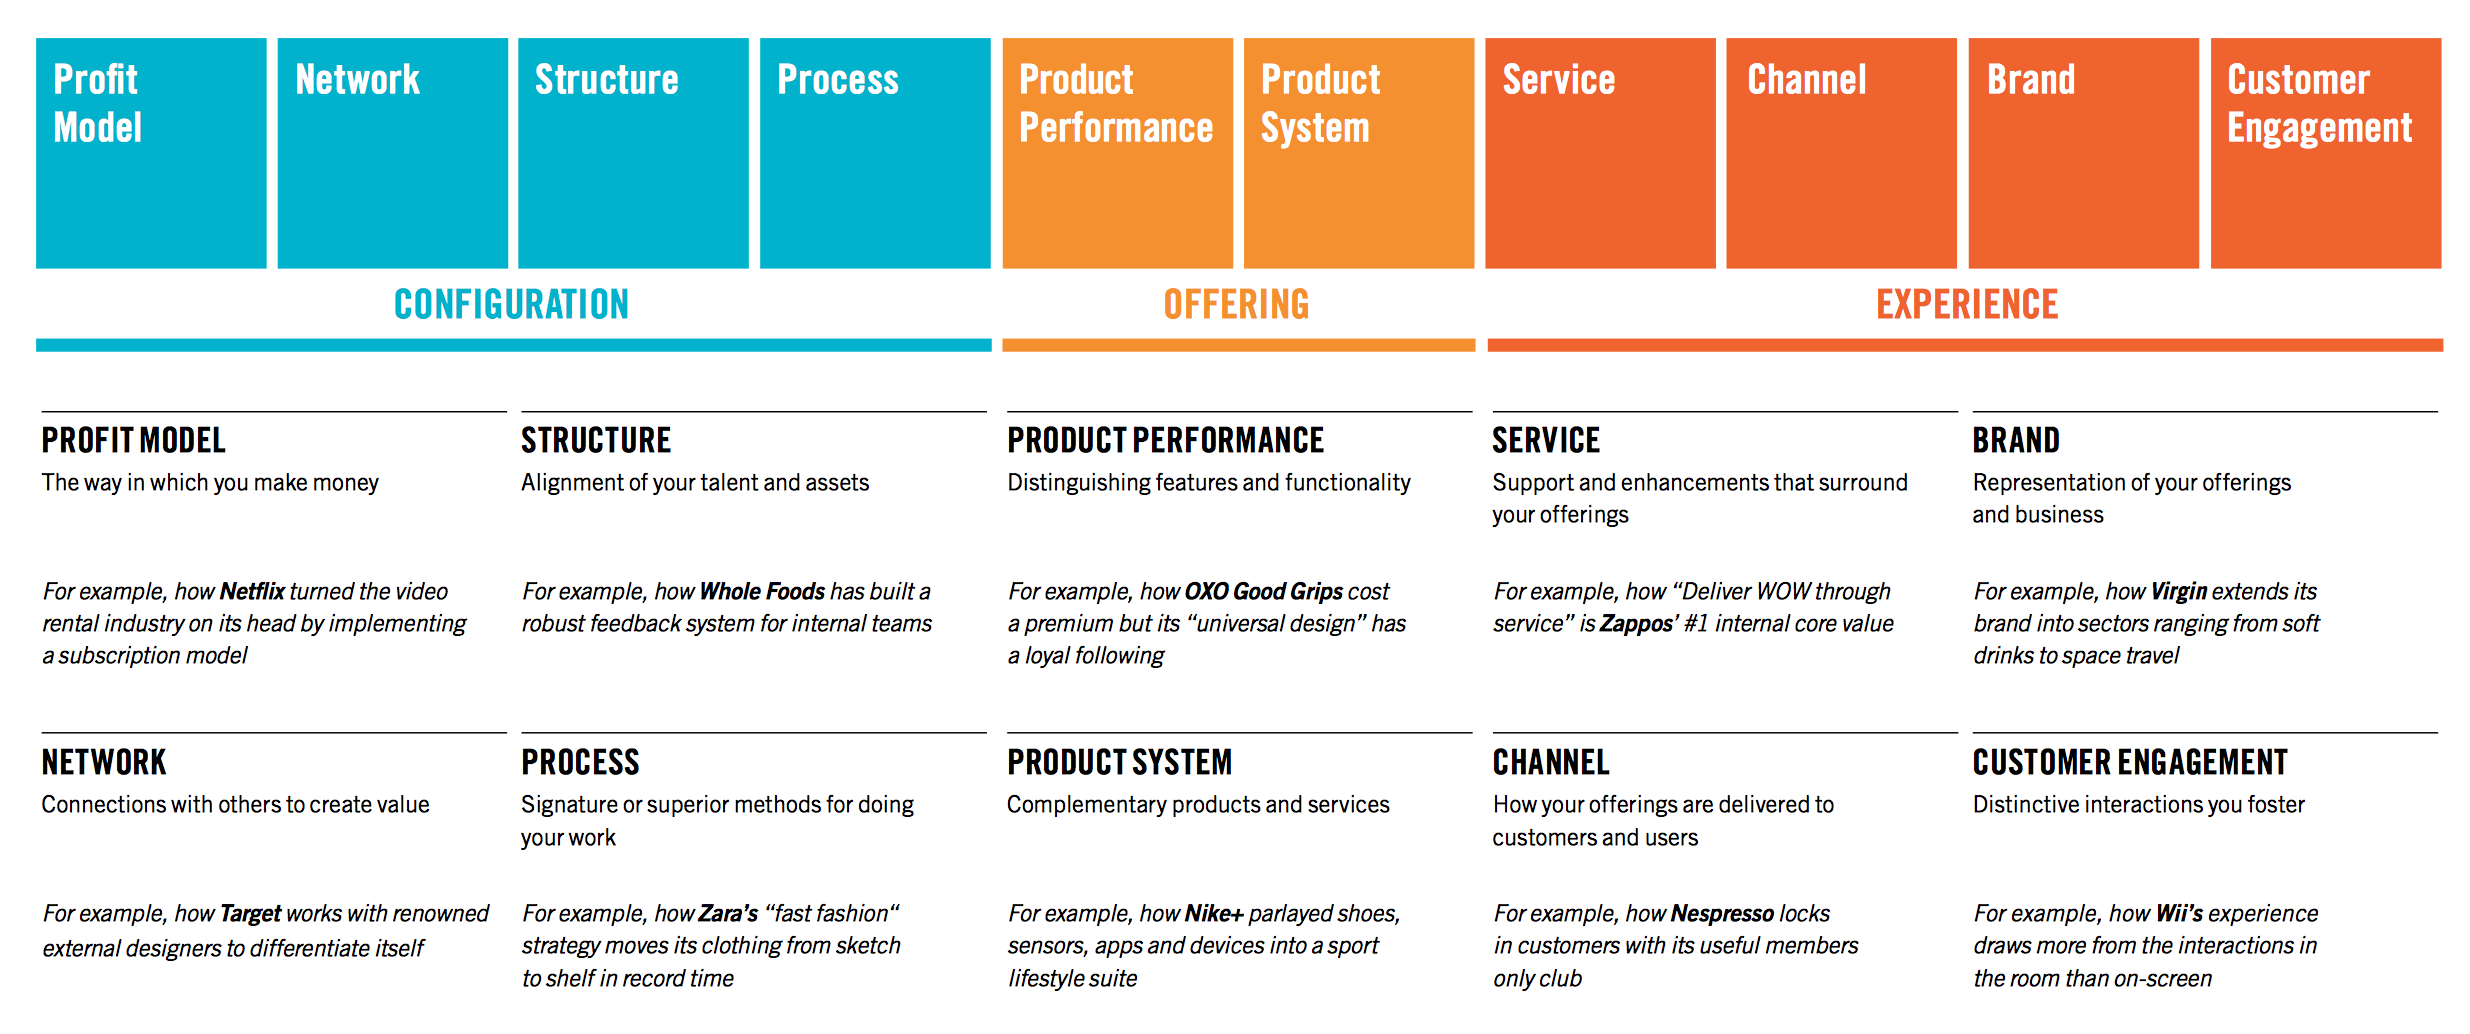 Basic Types of Innovation